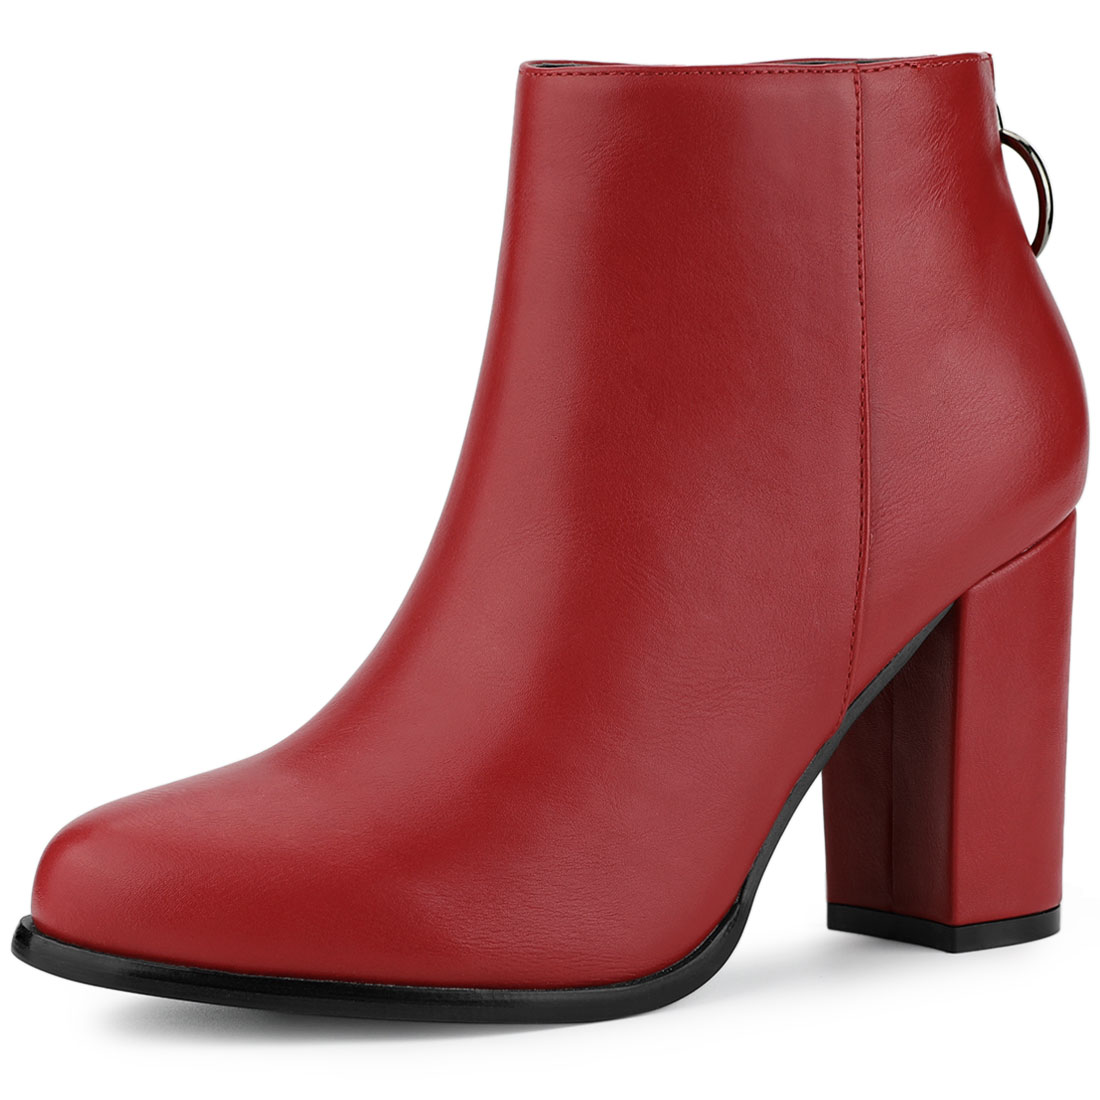 Allegra K Women's Round Toe Back Zip Block Heel Ankle Booties Red US 6